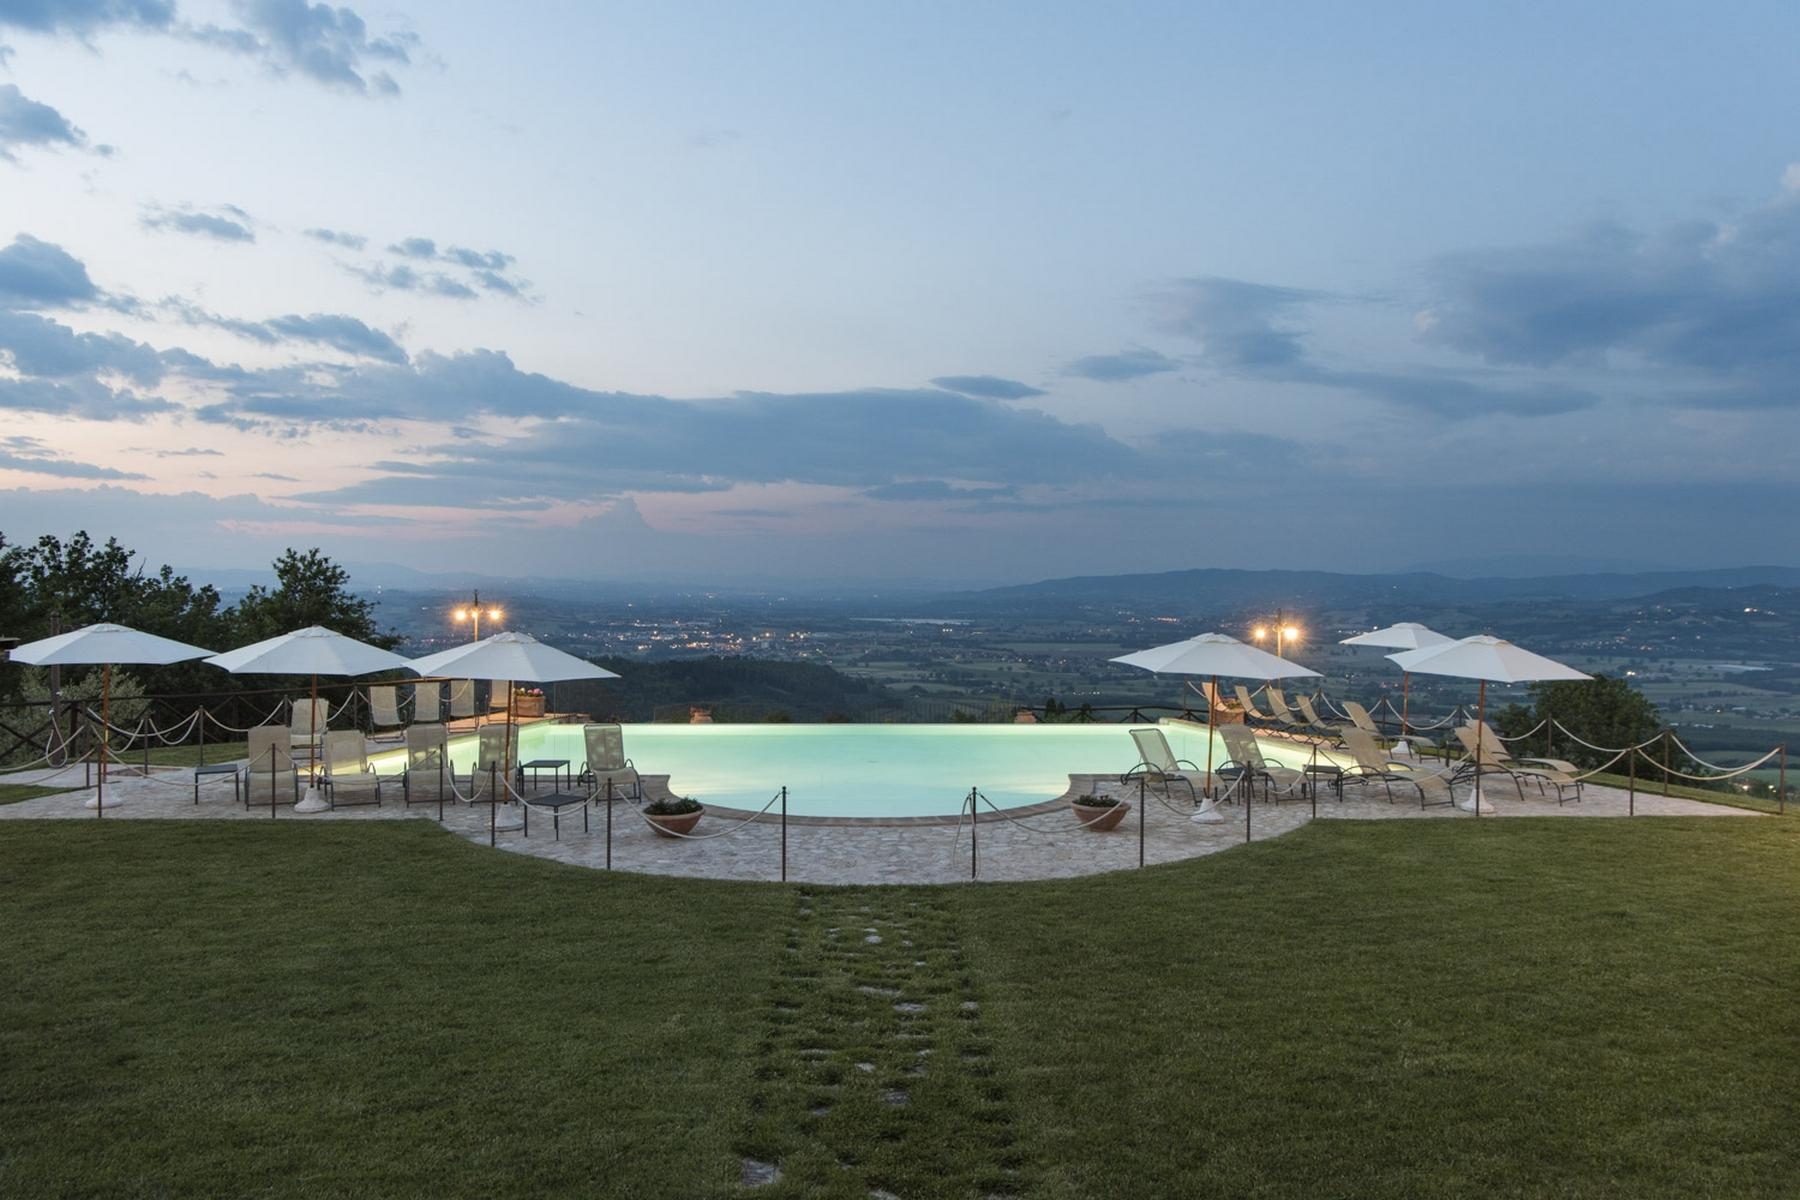 Marvellous property in the heart of Umbria Region - 20